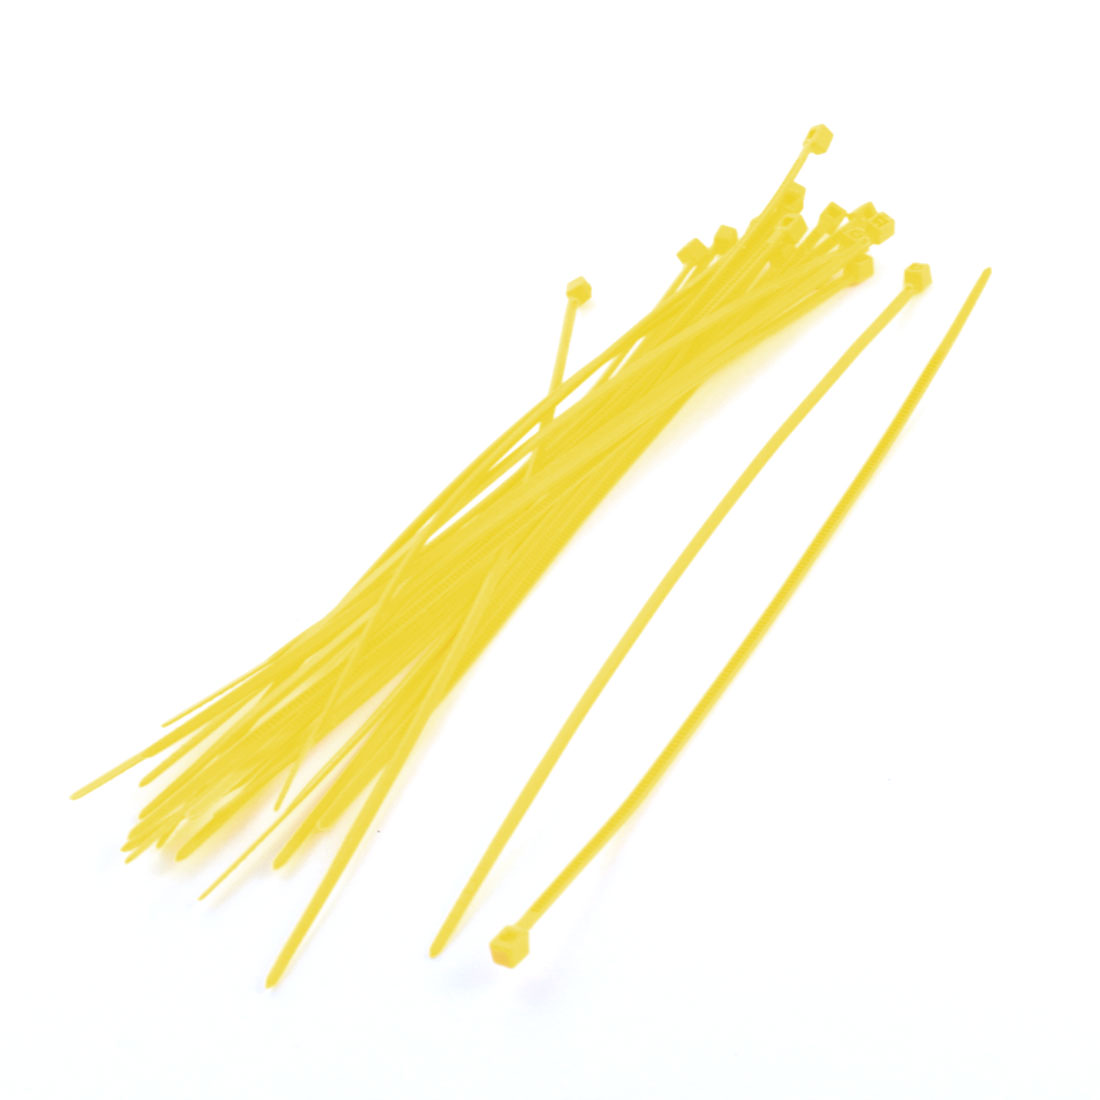 20Pcs 2mm Wide 150mm Length Nylon Cable Zip Ties Wire Cord Strap Yellow